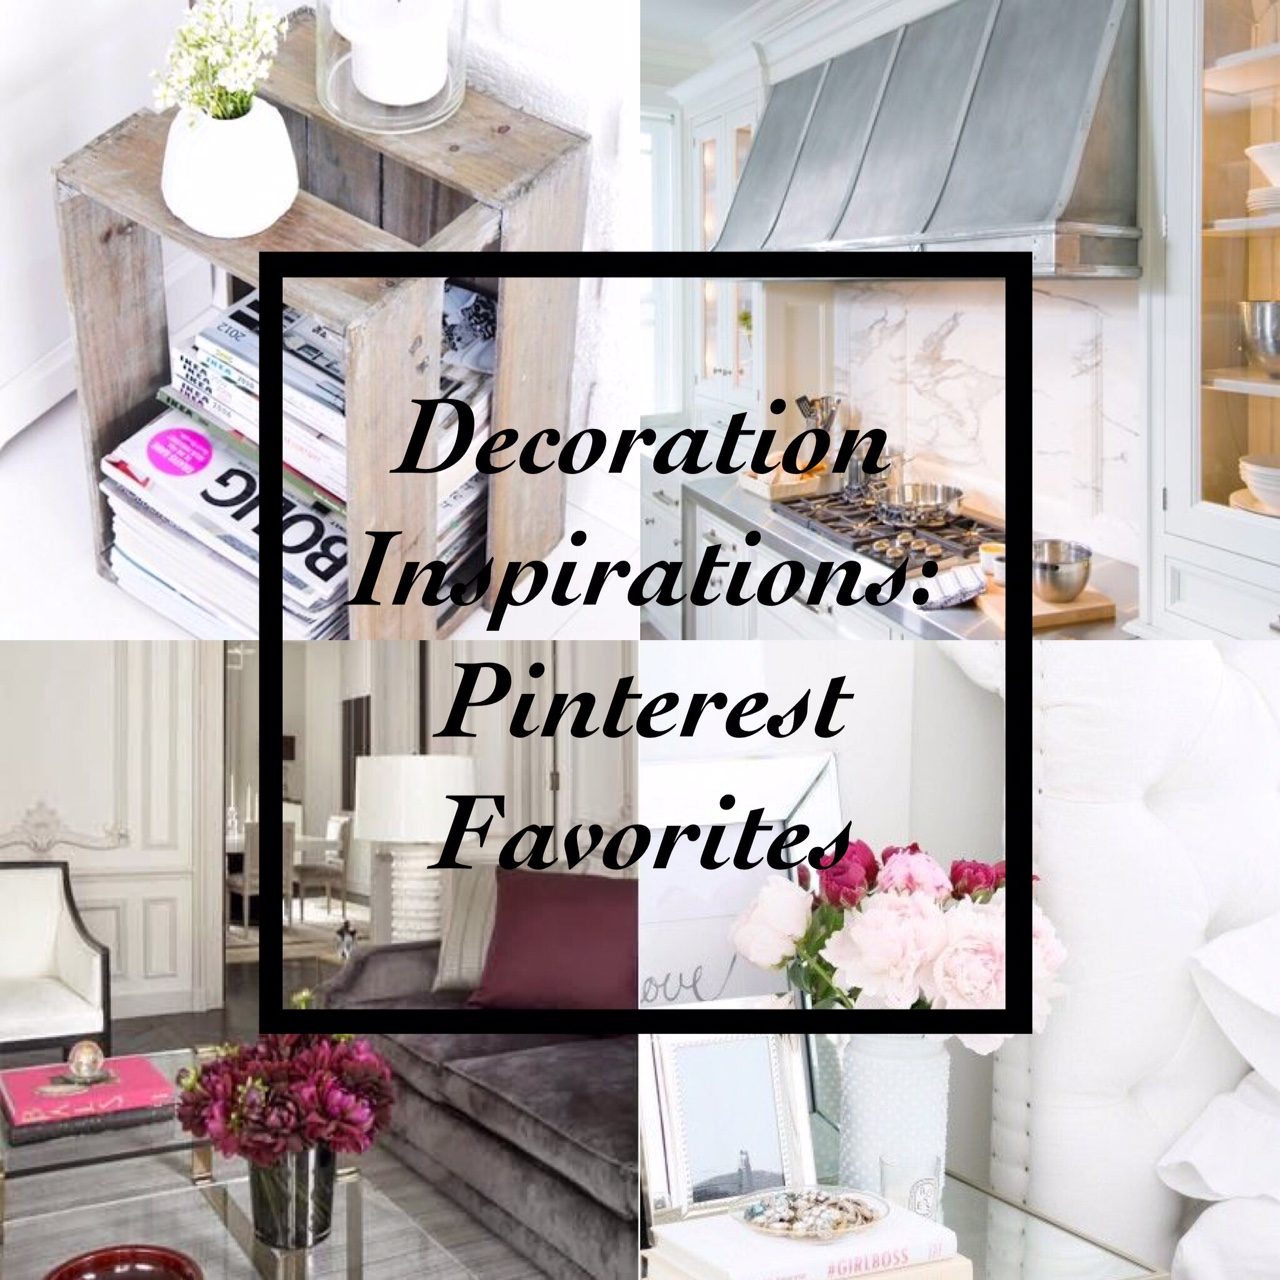 Decoration Inspirations - Pinterest Favorites